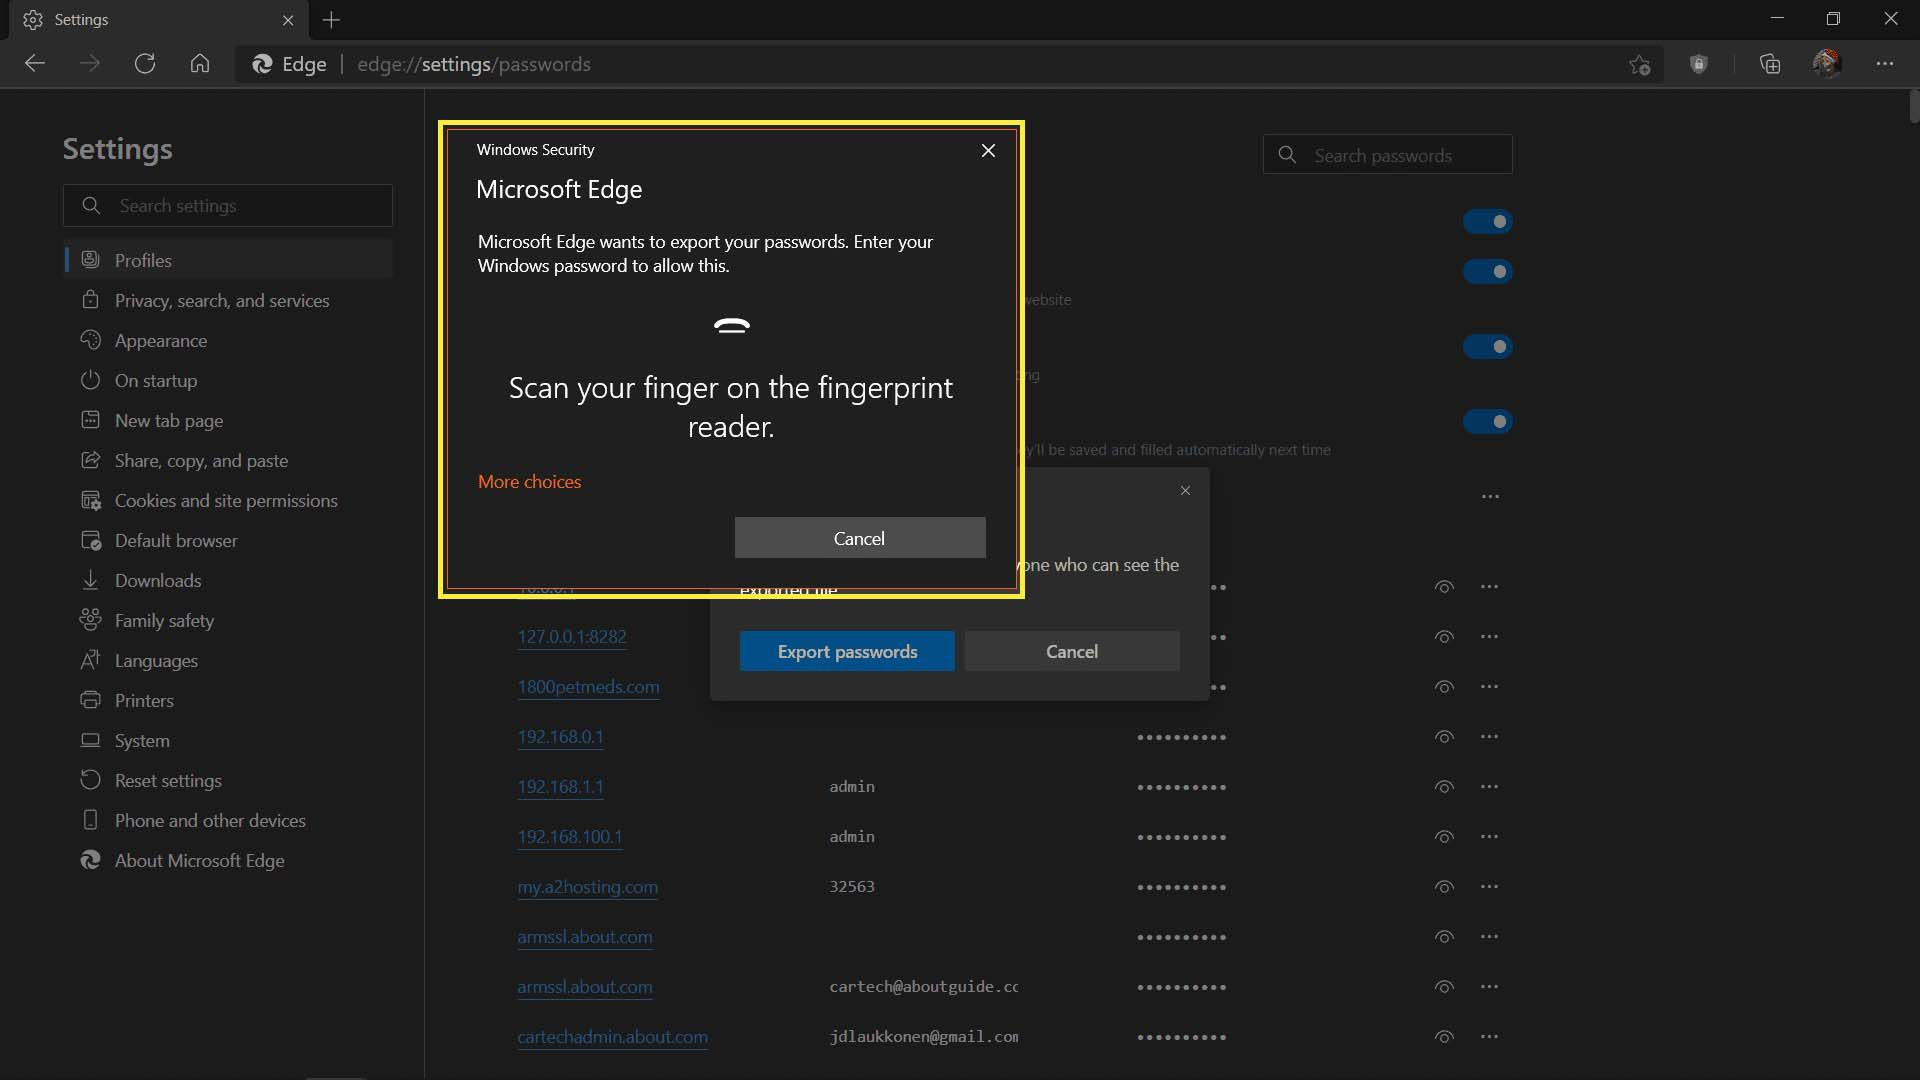 Window for entering password or scanning your finger in MS Edge.